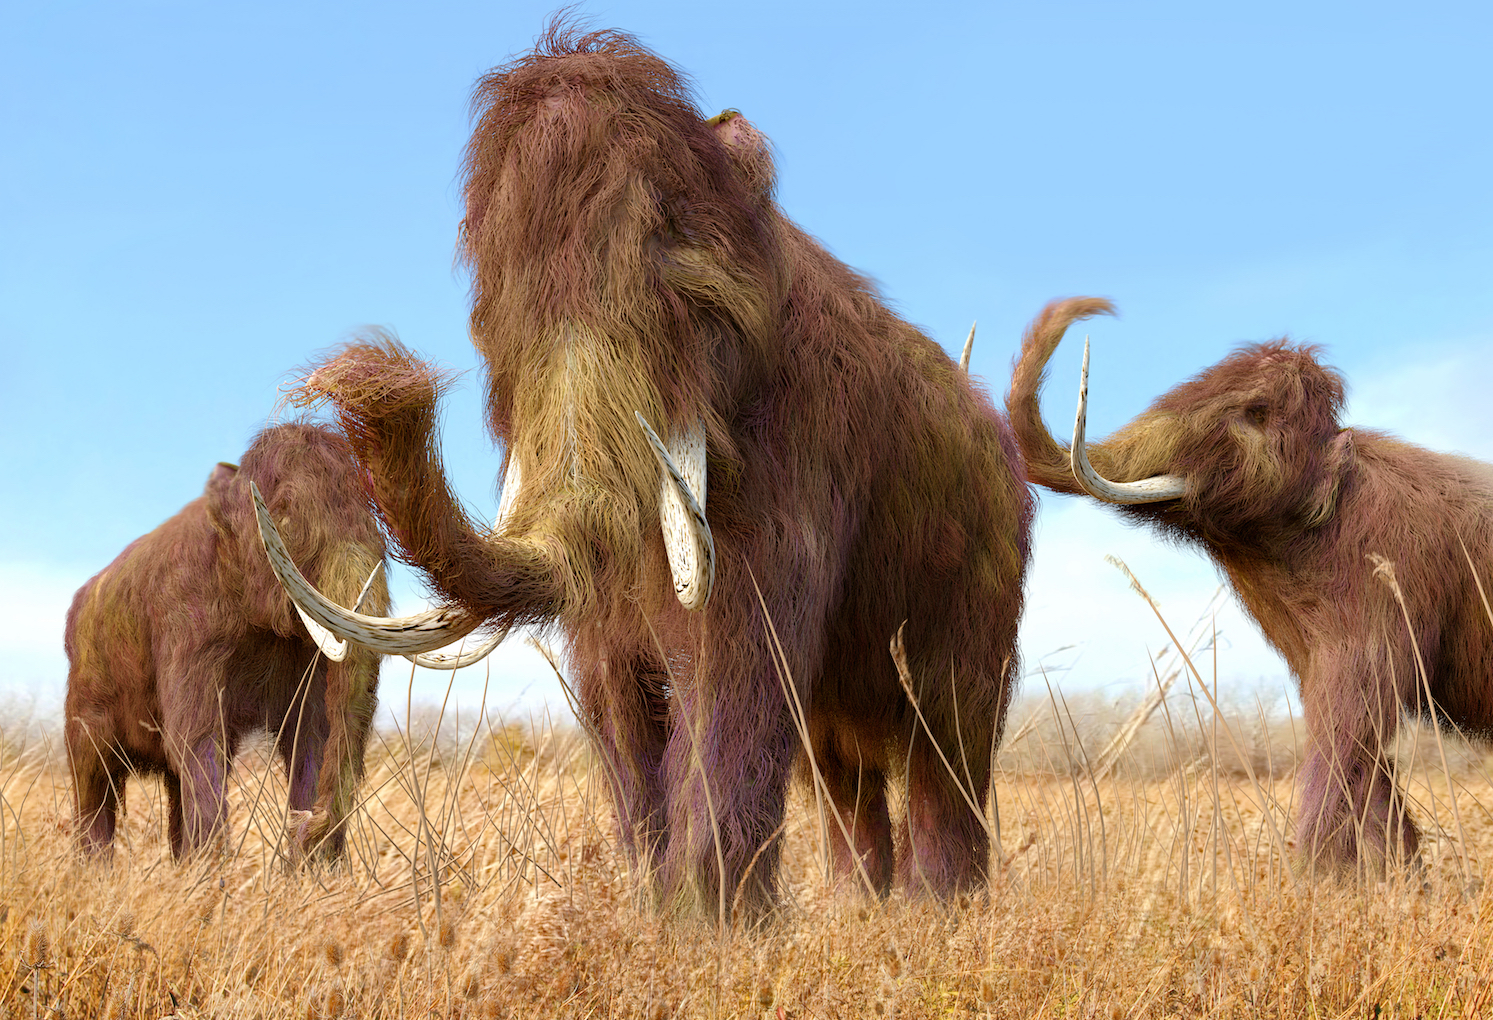 Harvard University scientists are planning to clone woolly mammoths and bring them back from extinction by using DNA from a 42,000 year-old frozen woolly mammoth, of course!